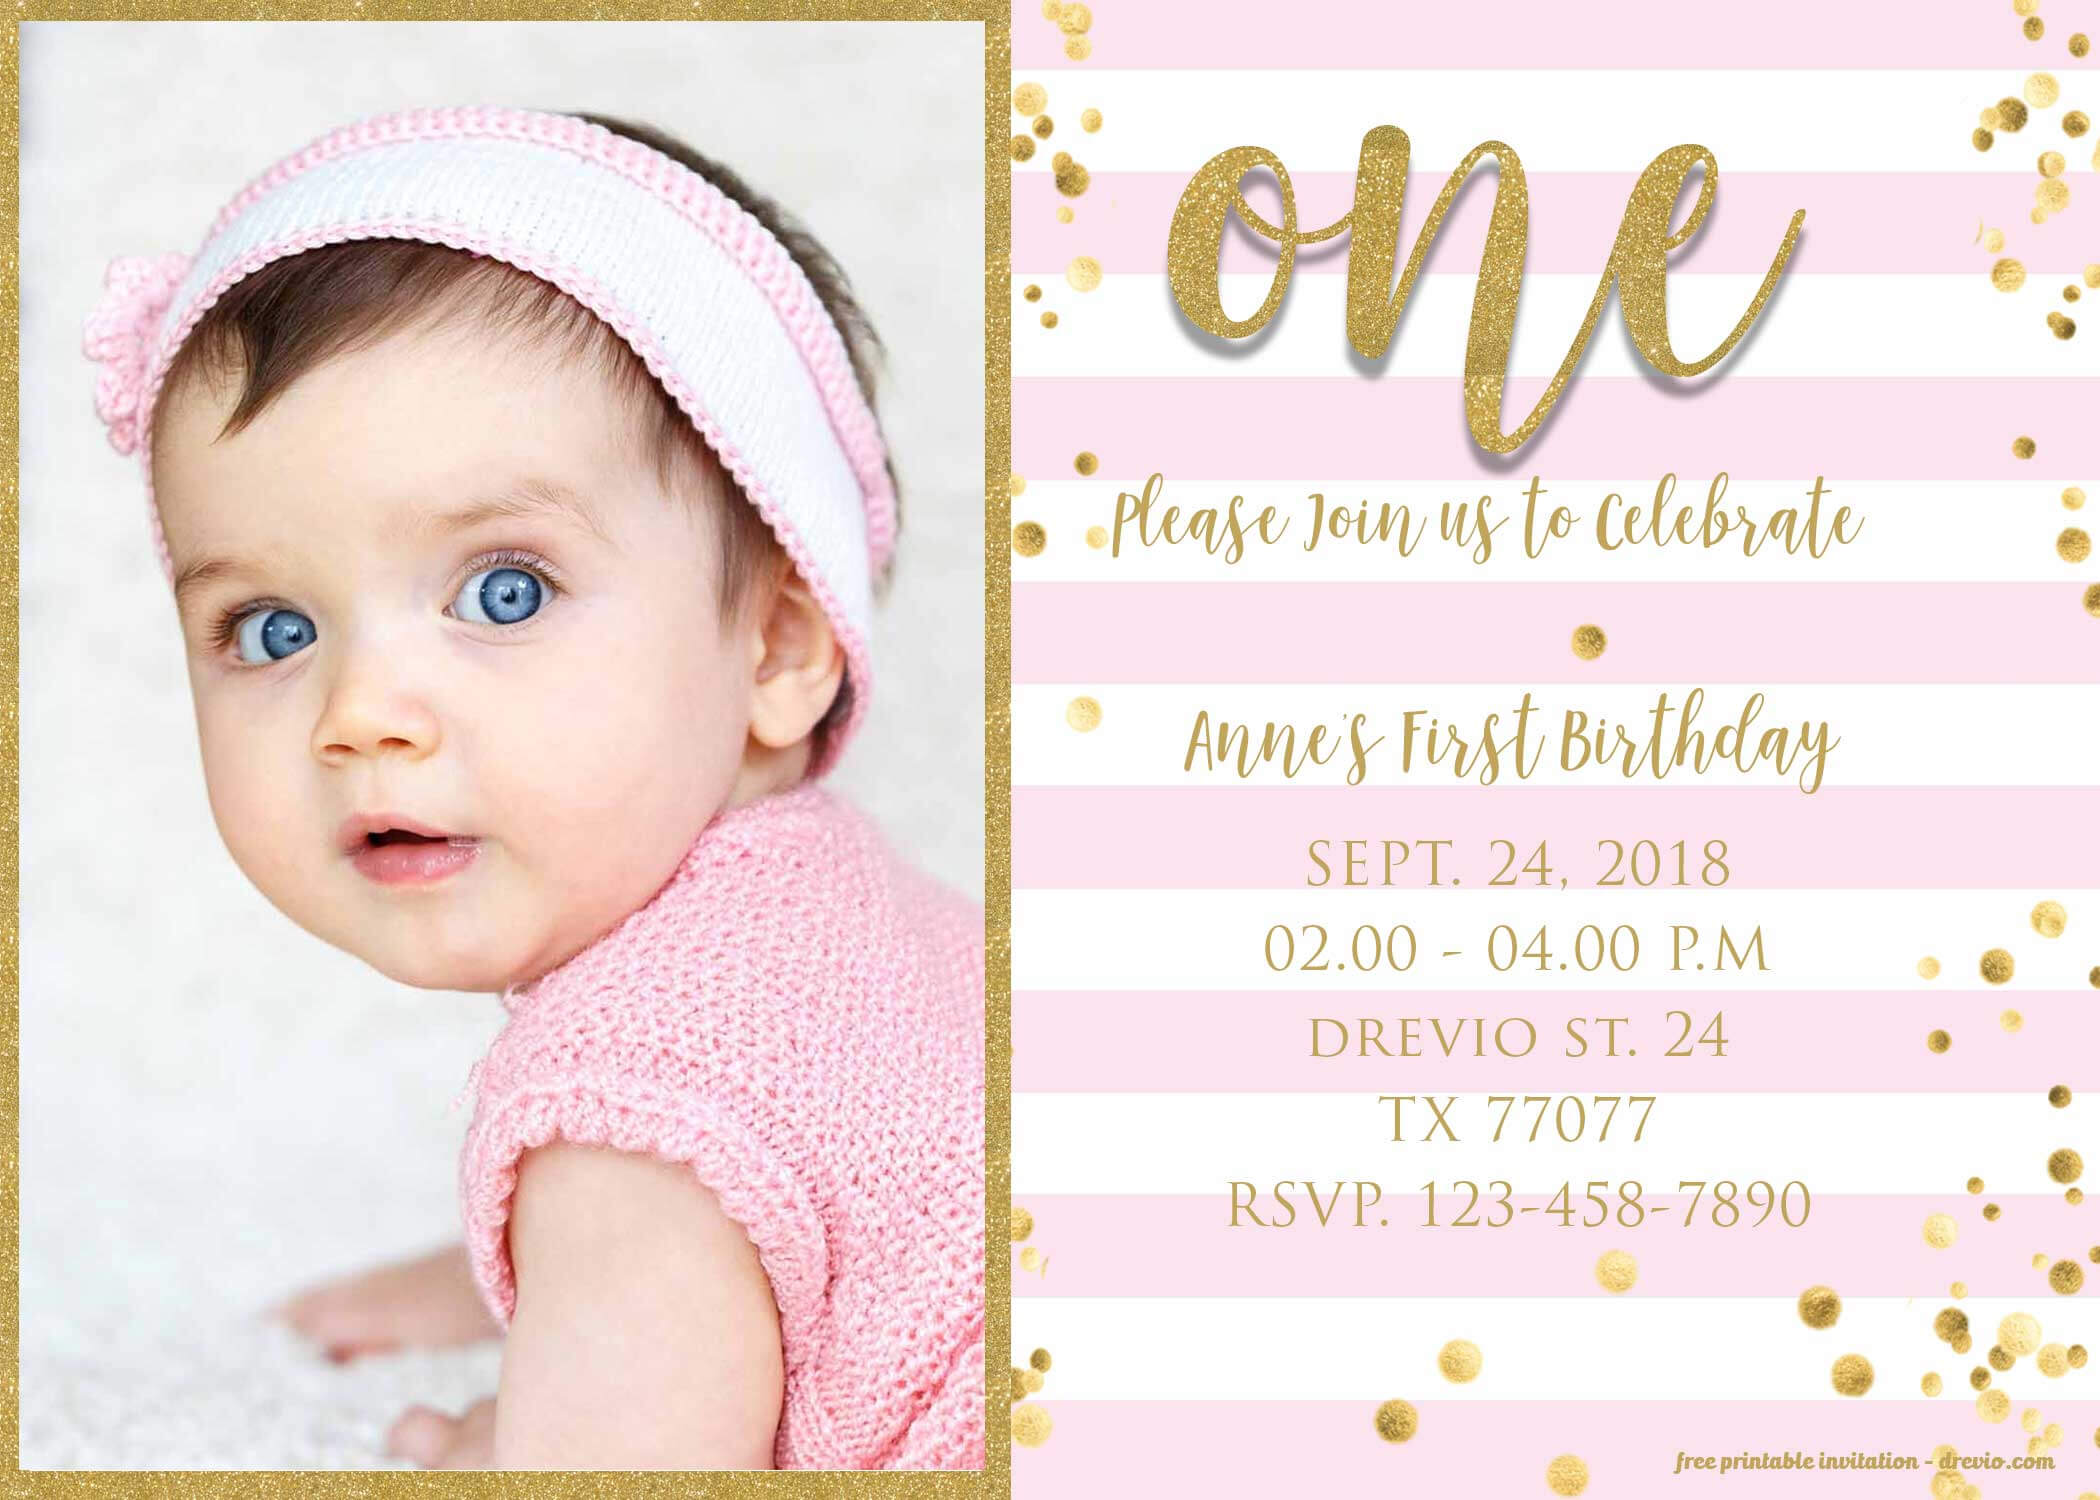 Free 1St Birthday Invitations Template For Girl – Bagvania In 1St Birthday Invitation Templates Free Printable